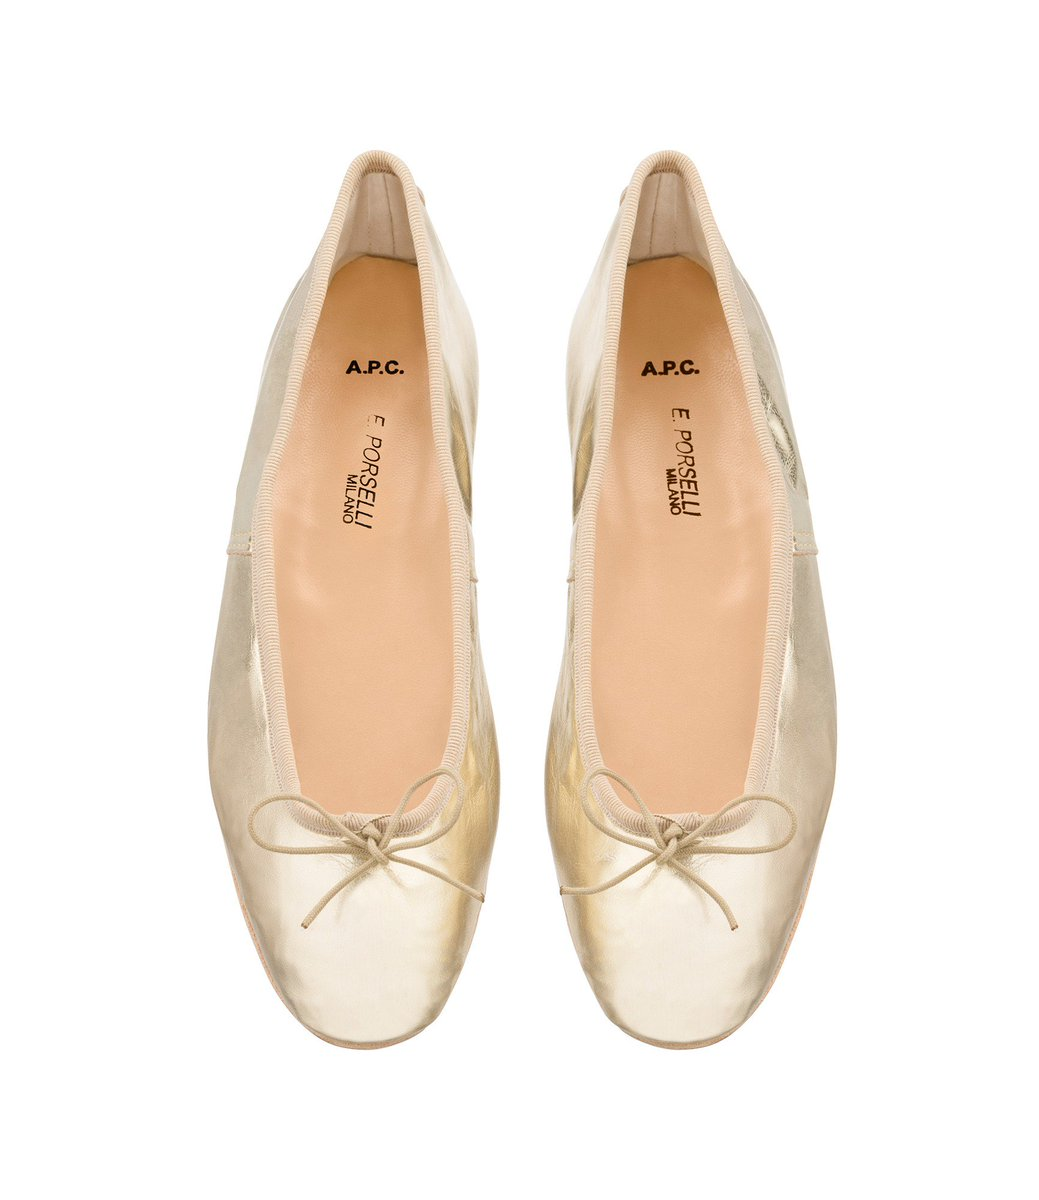 8a35de6d3ce4  APC  Porselli ballet flats from the women  FW17 collection.pic.twitter .com LylT8uyNXf